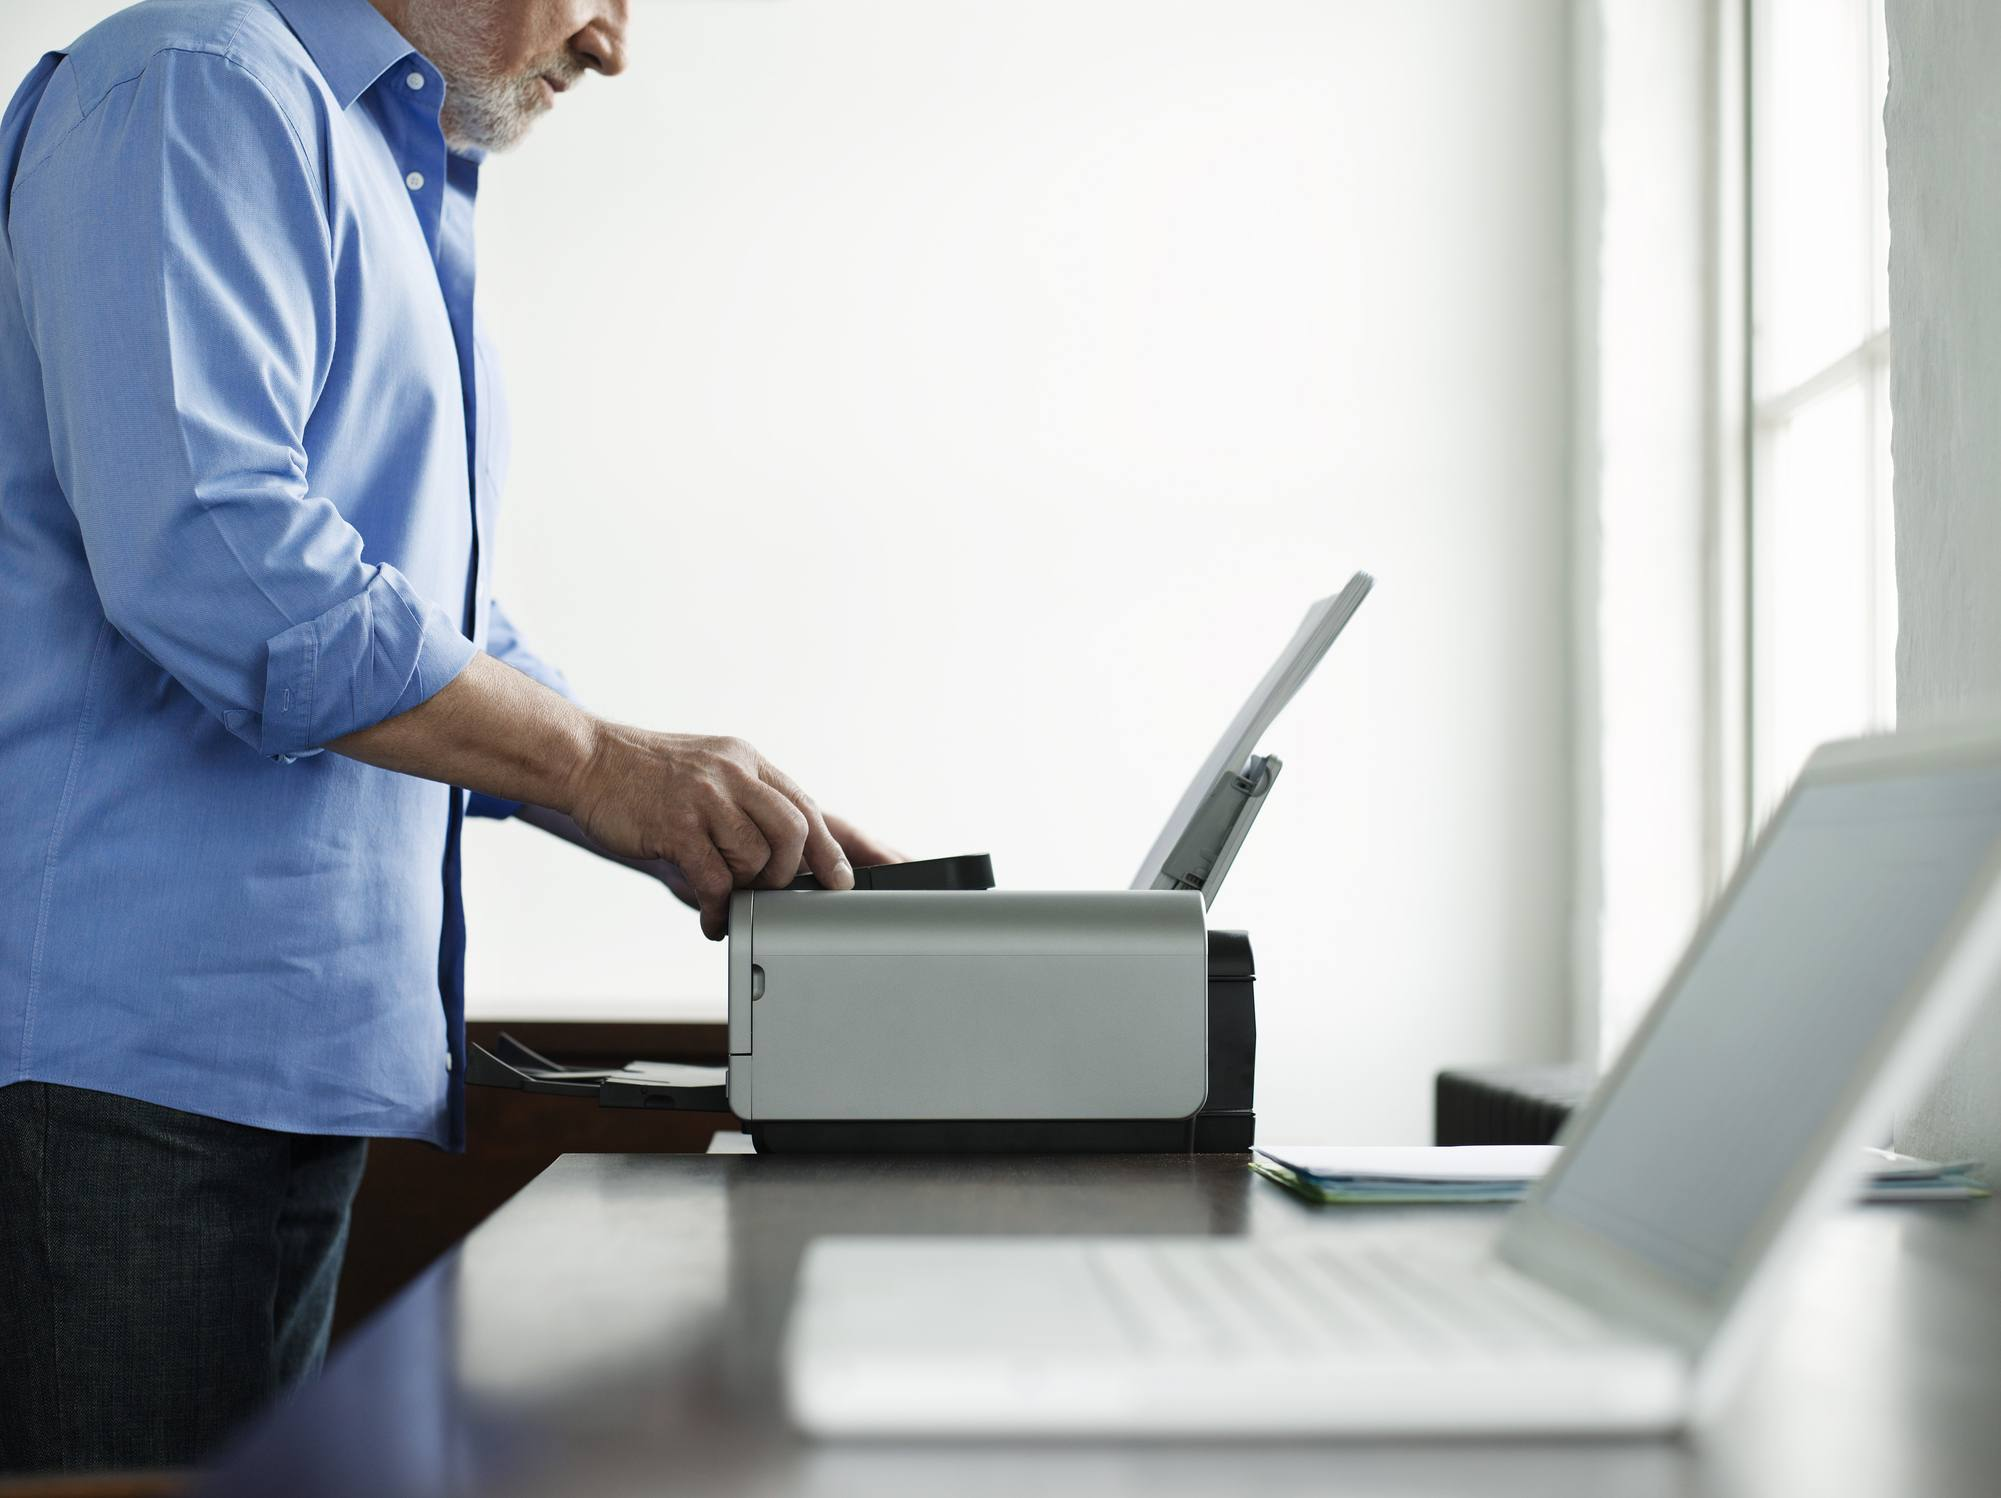 Here's How to Connect a Printer to Your Computer with Windows 10